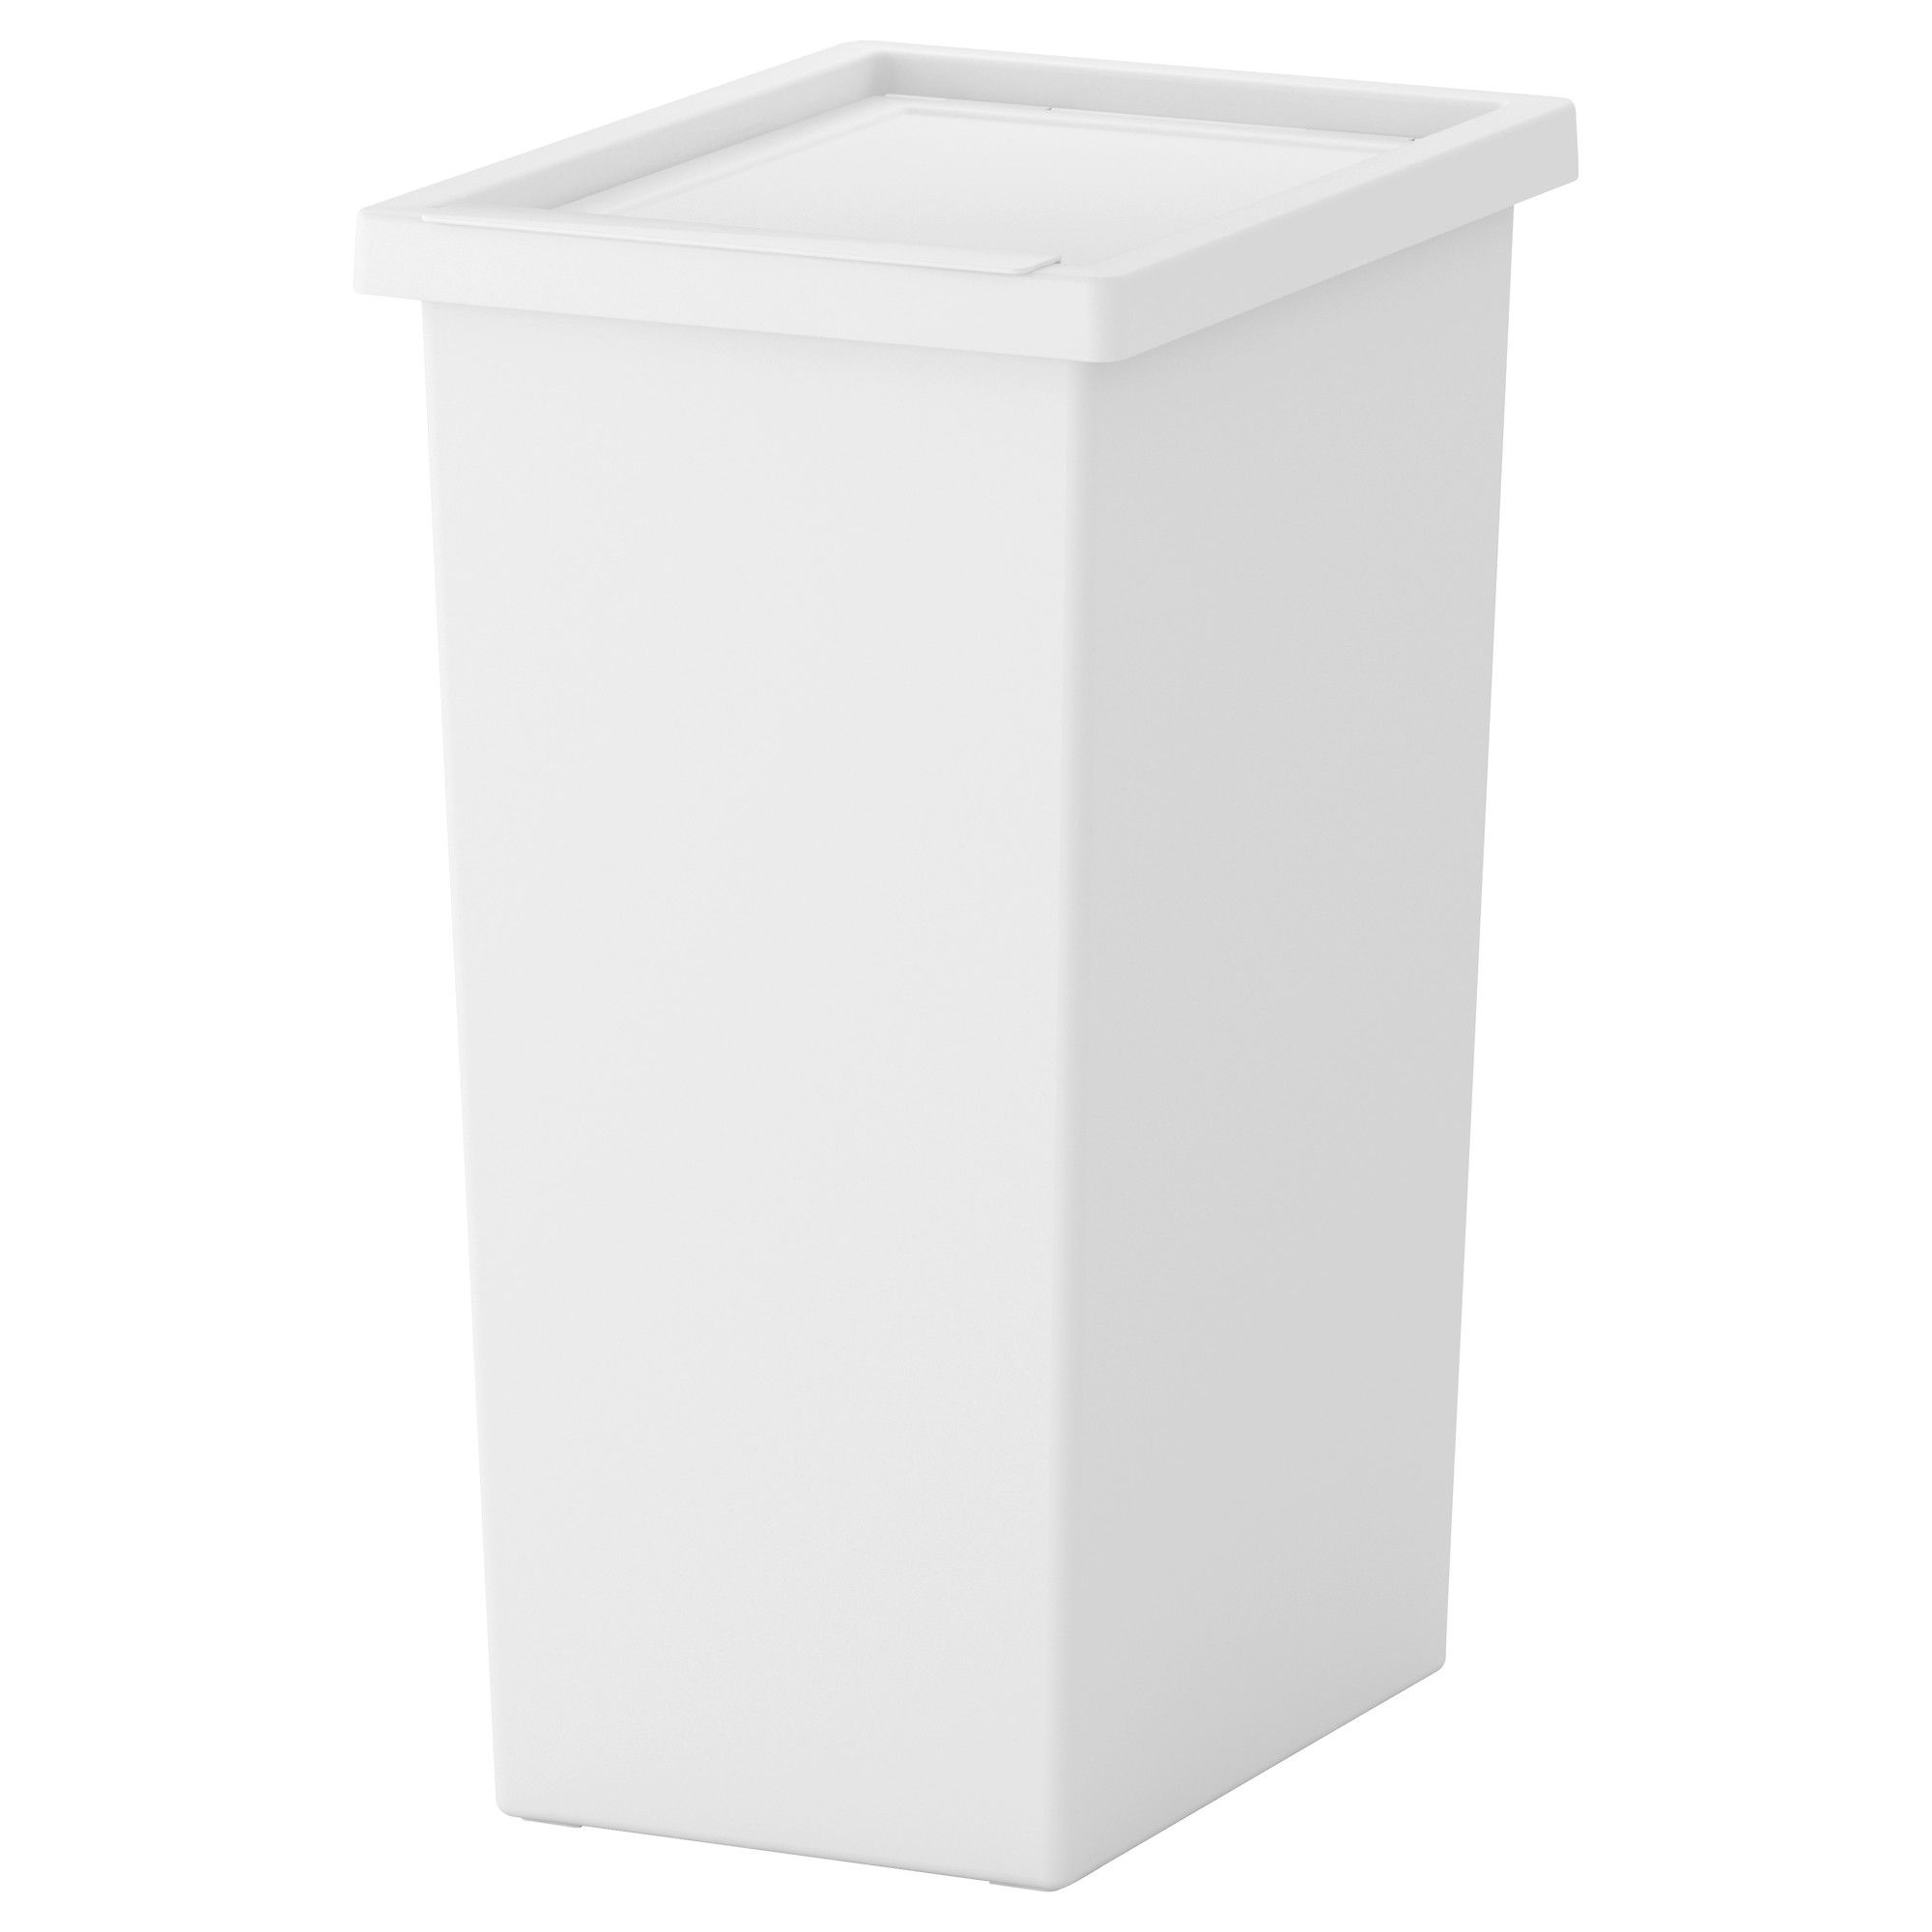 Filur bin with lid white my ikea list ikea deckel tonne for Ikea raccolta differenziata